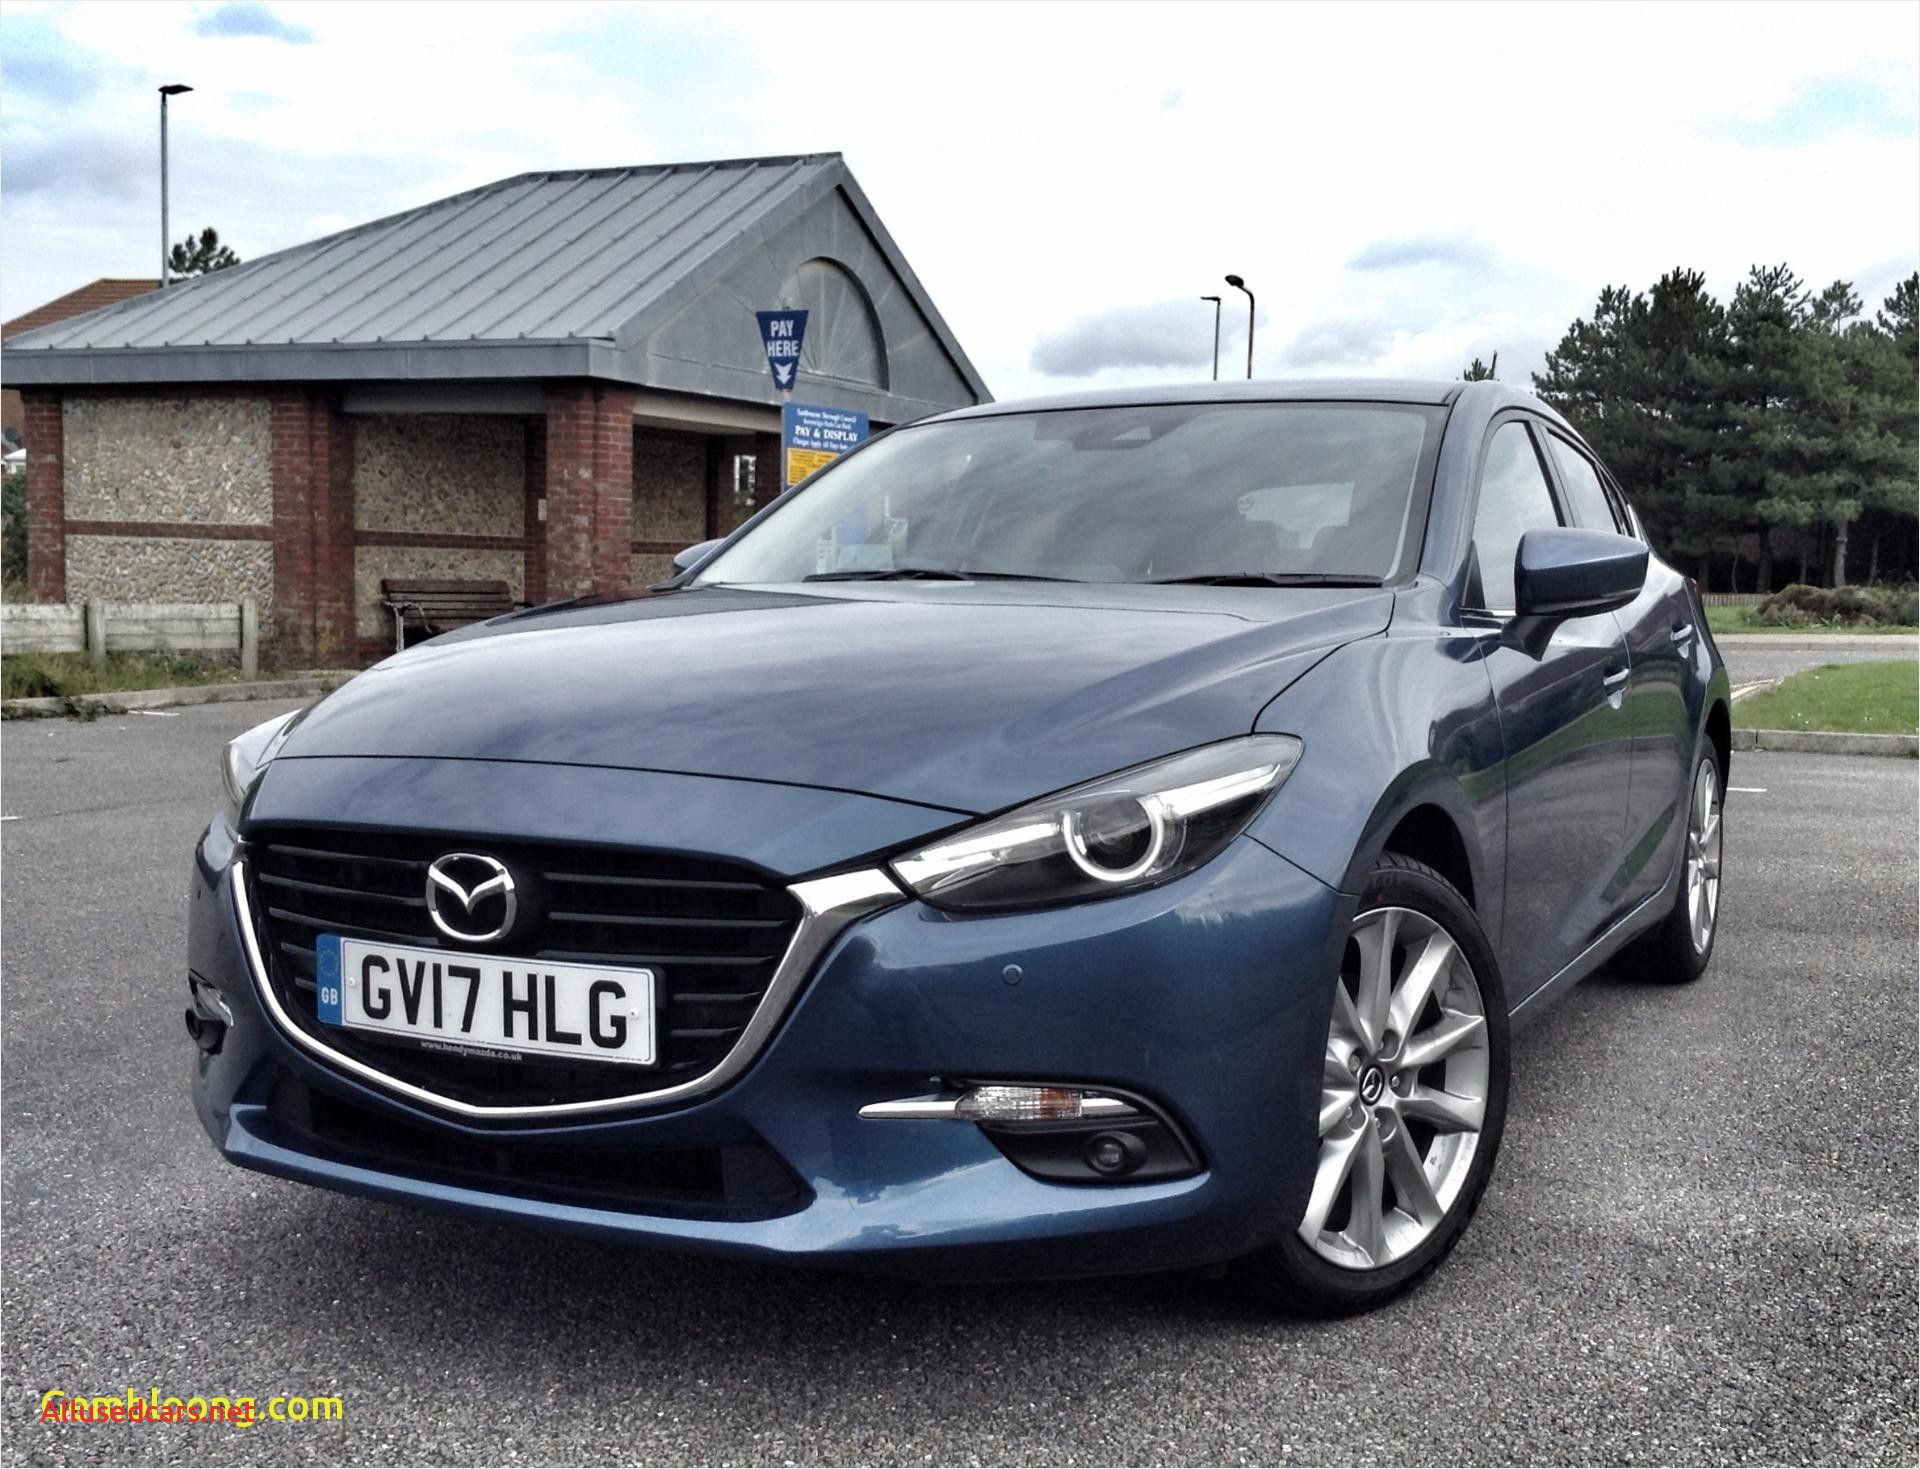 Awesome Repossessed Cars for Sale Near Me Fresh Luxury Cars for Sale Near Me for Under 5000 Di 2020